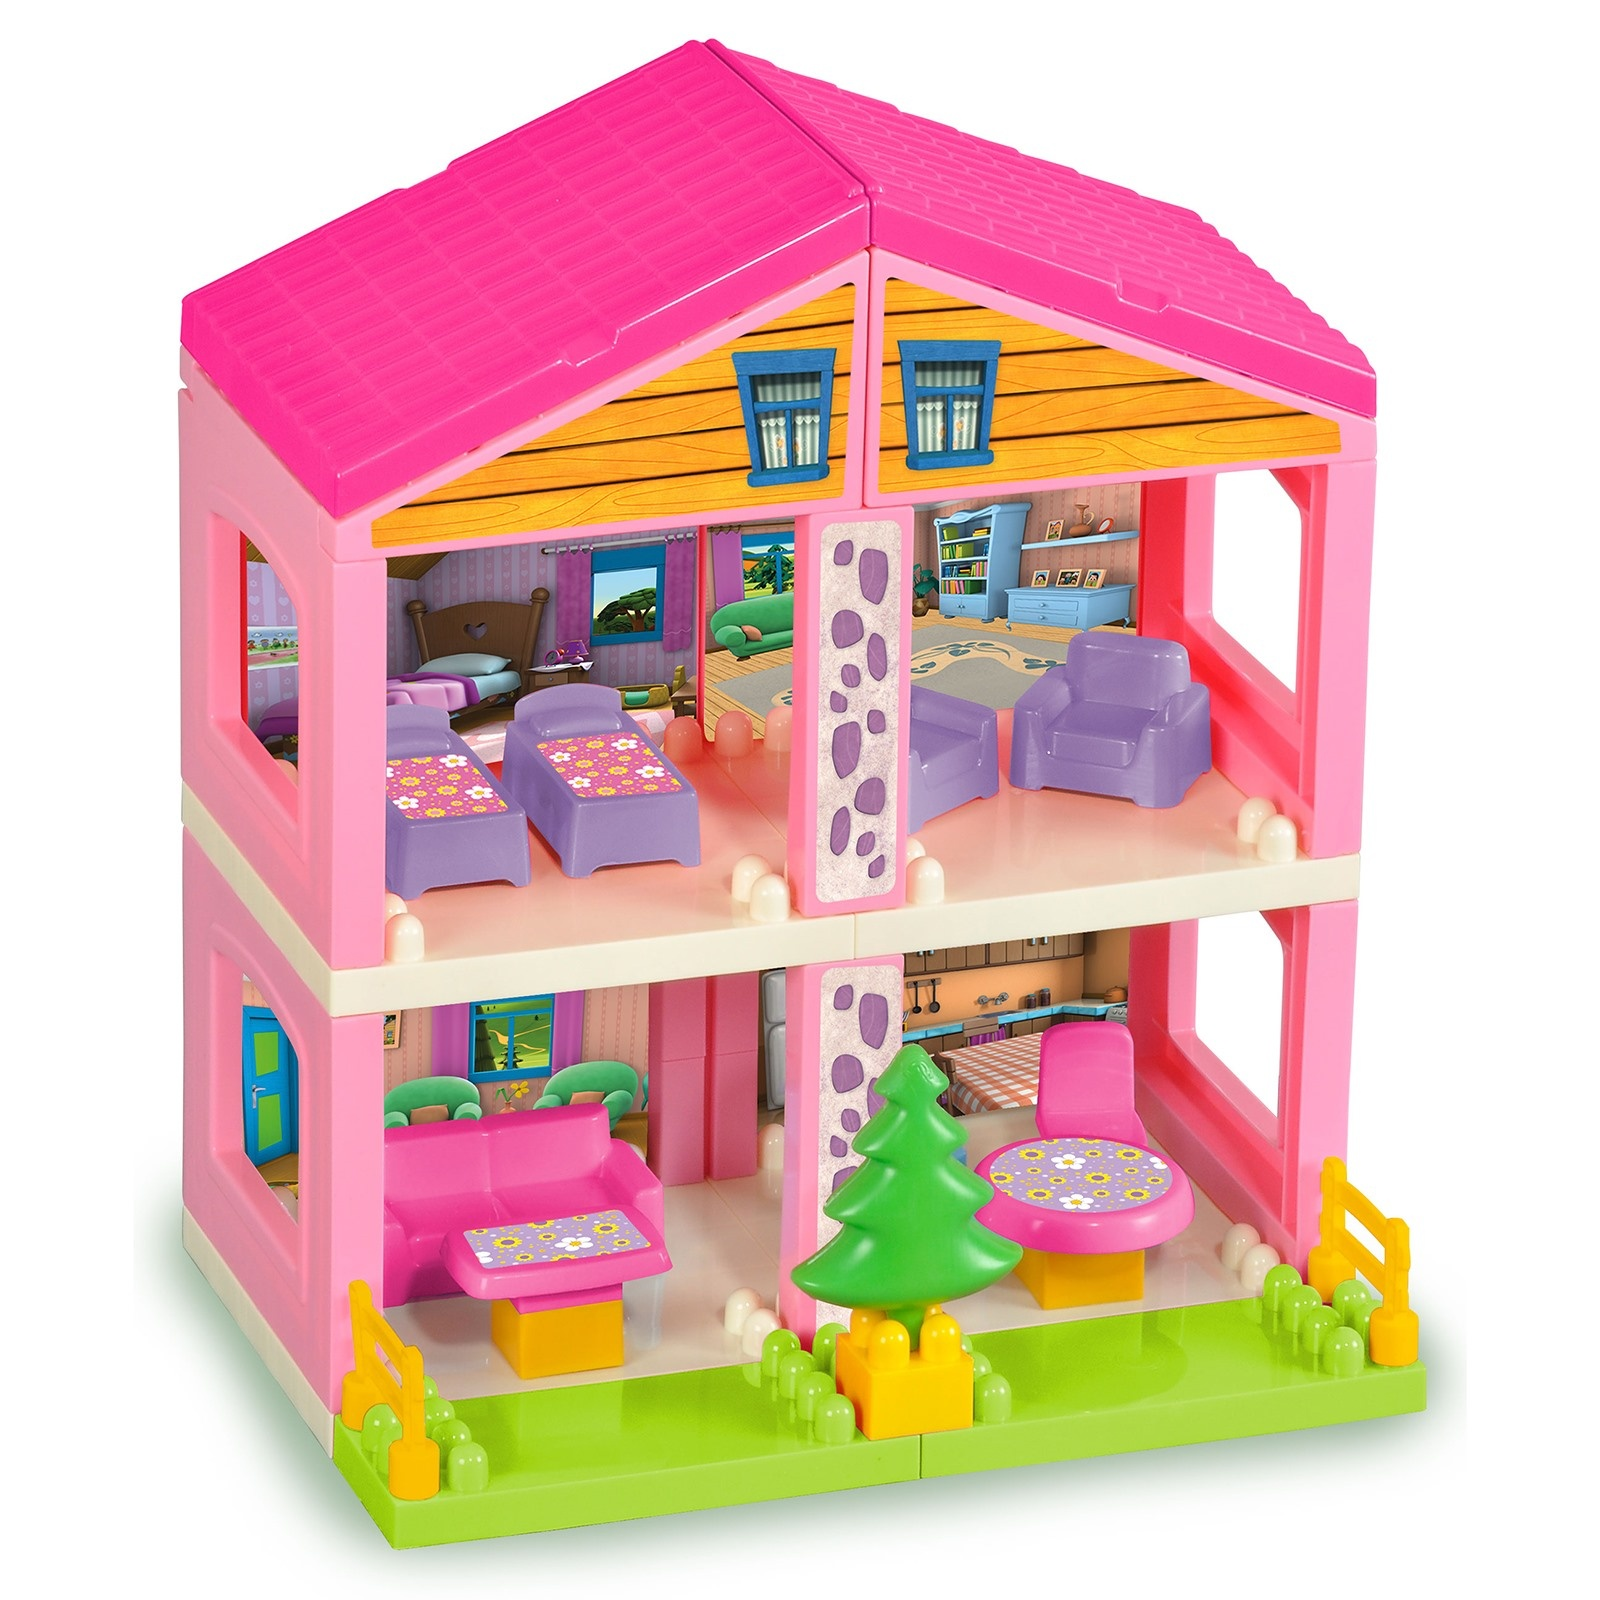 Ebebek Niloya Home Blocks Game